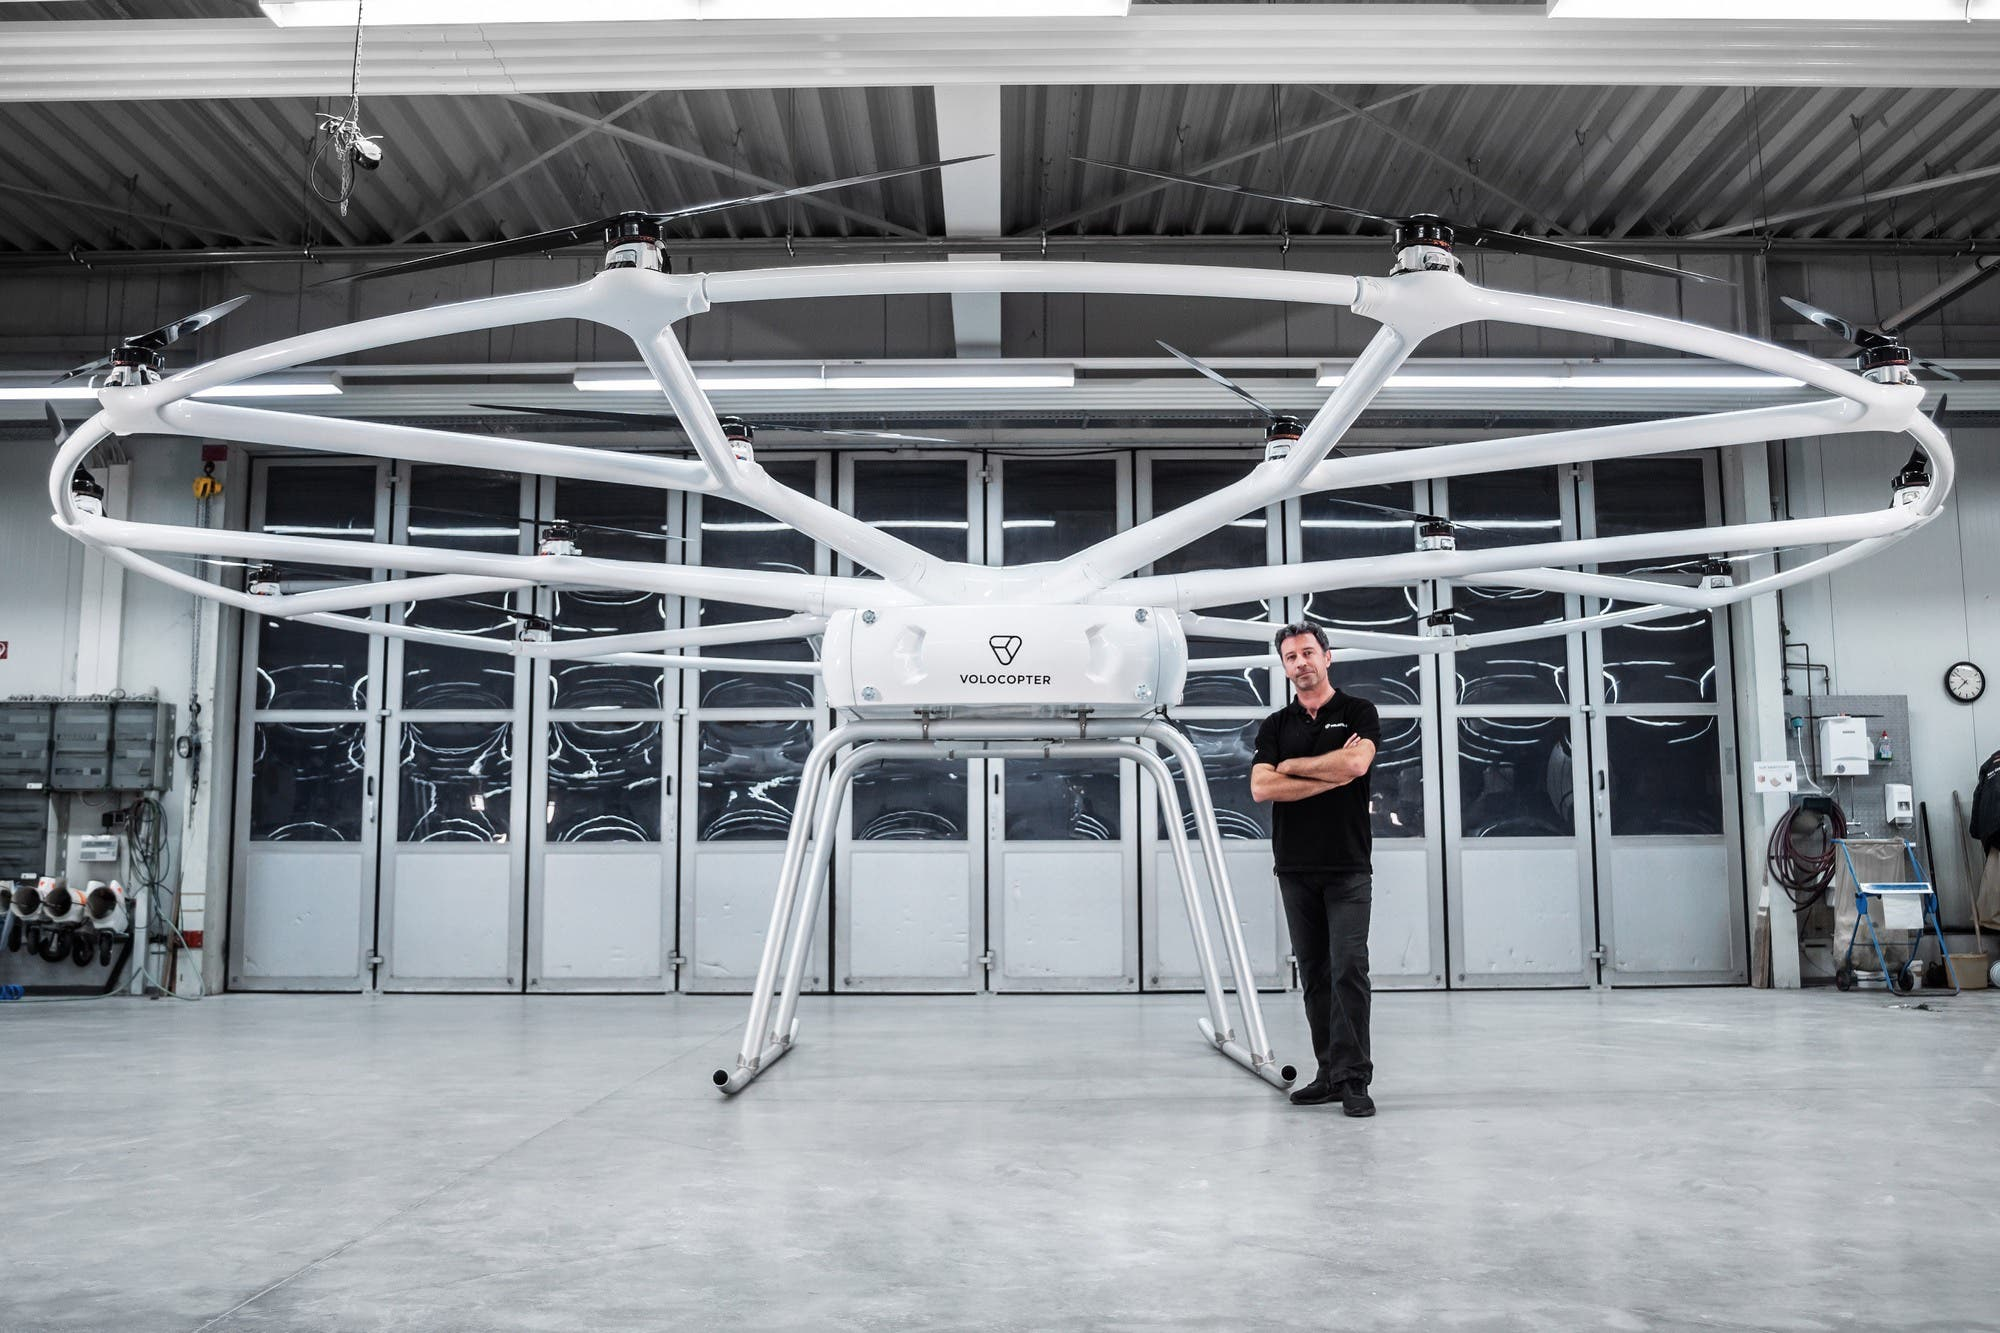 This is VoloDrone, the impressive drone that can carry up to 200 kilos